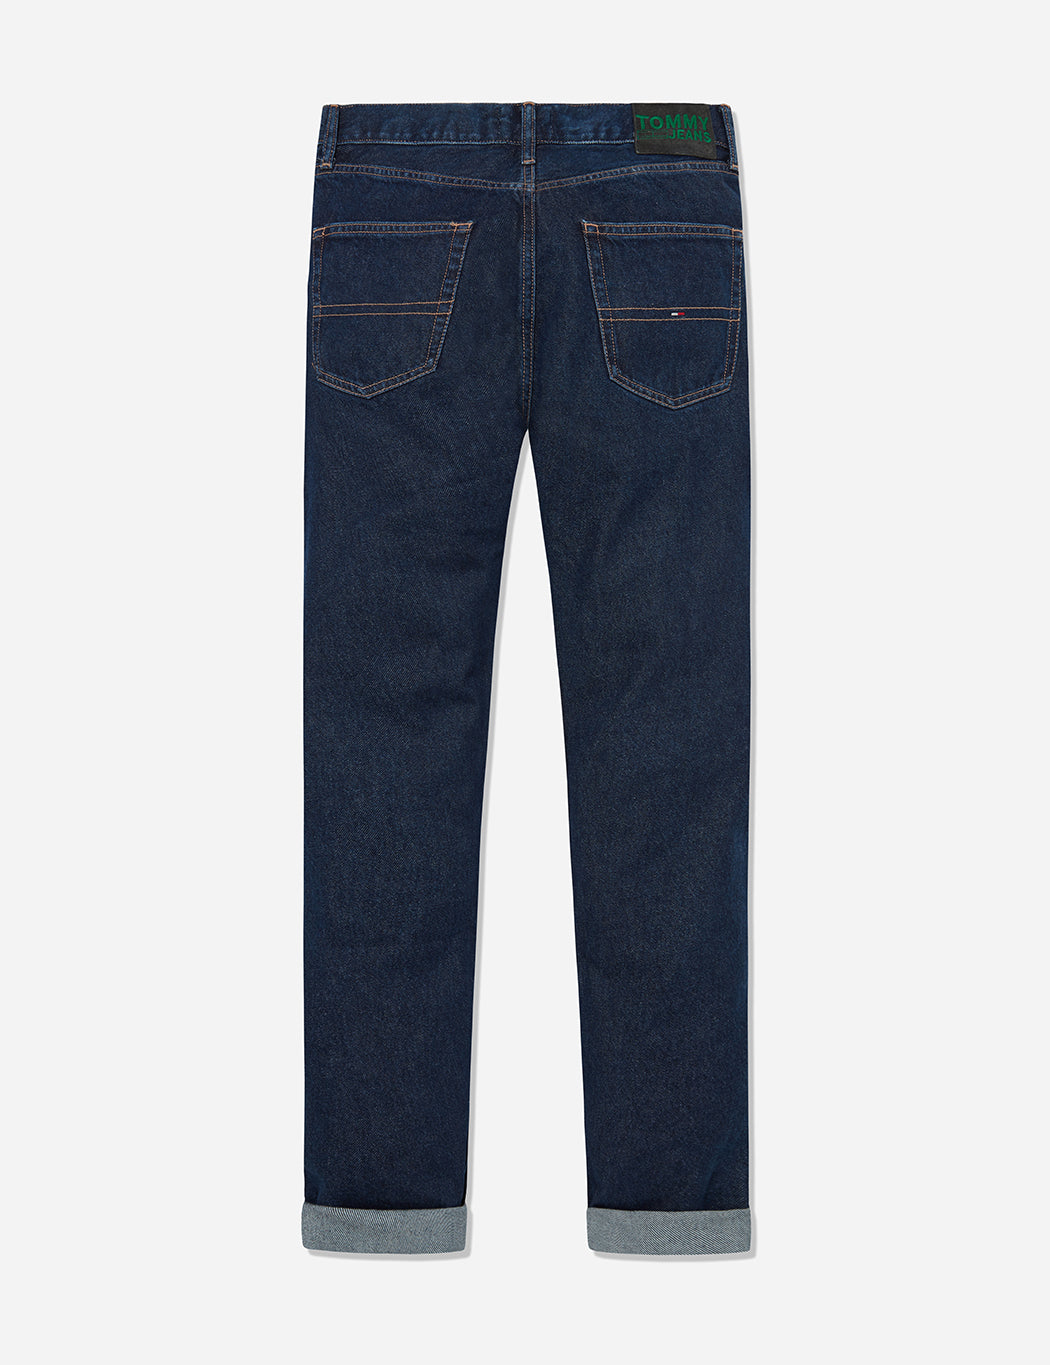 70cffea25 Tommy Hilfiger 1988 Jeans (Modern Tapered) - Dark Blue | URBAN EXCESS.